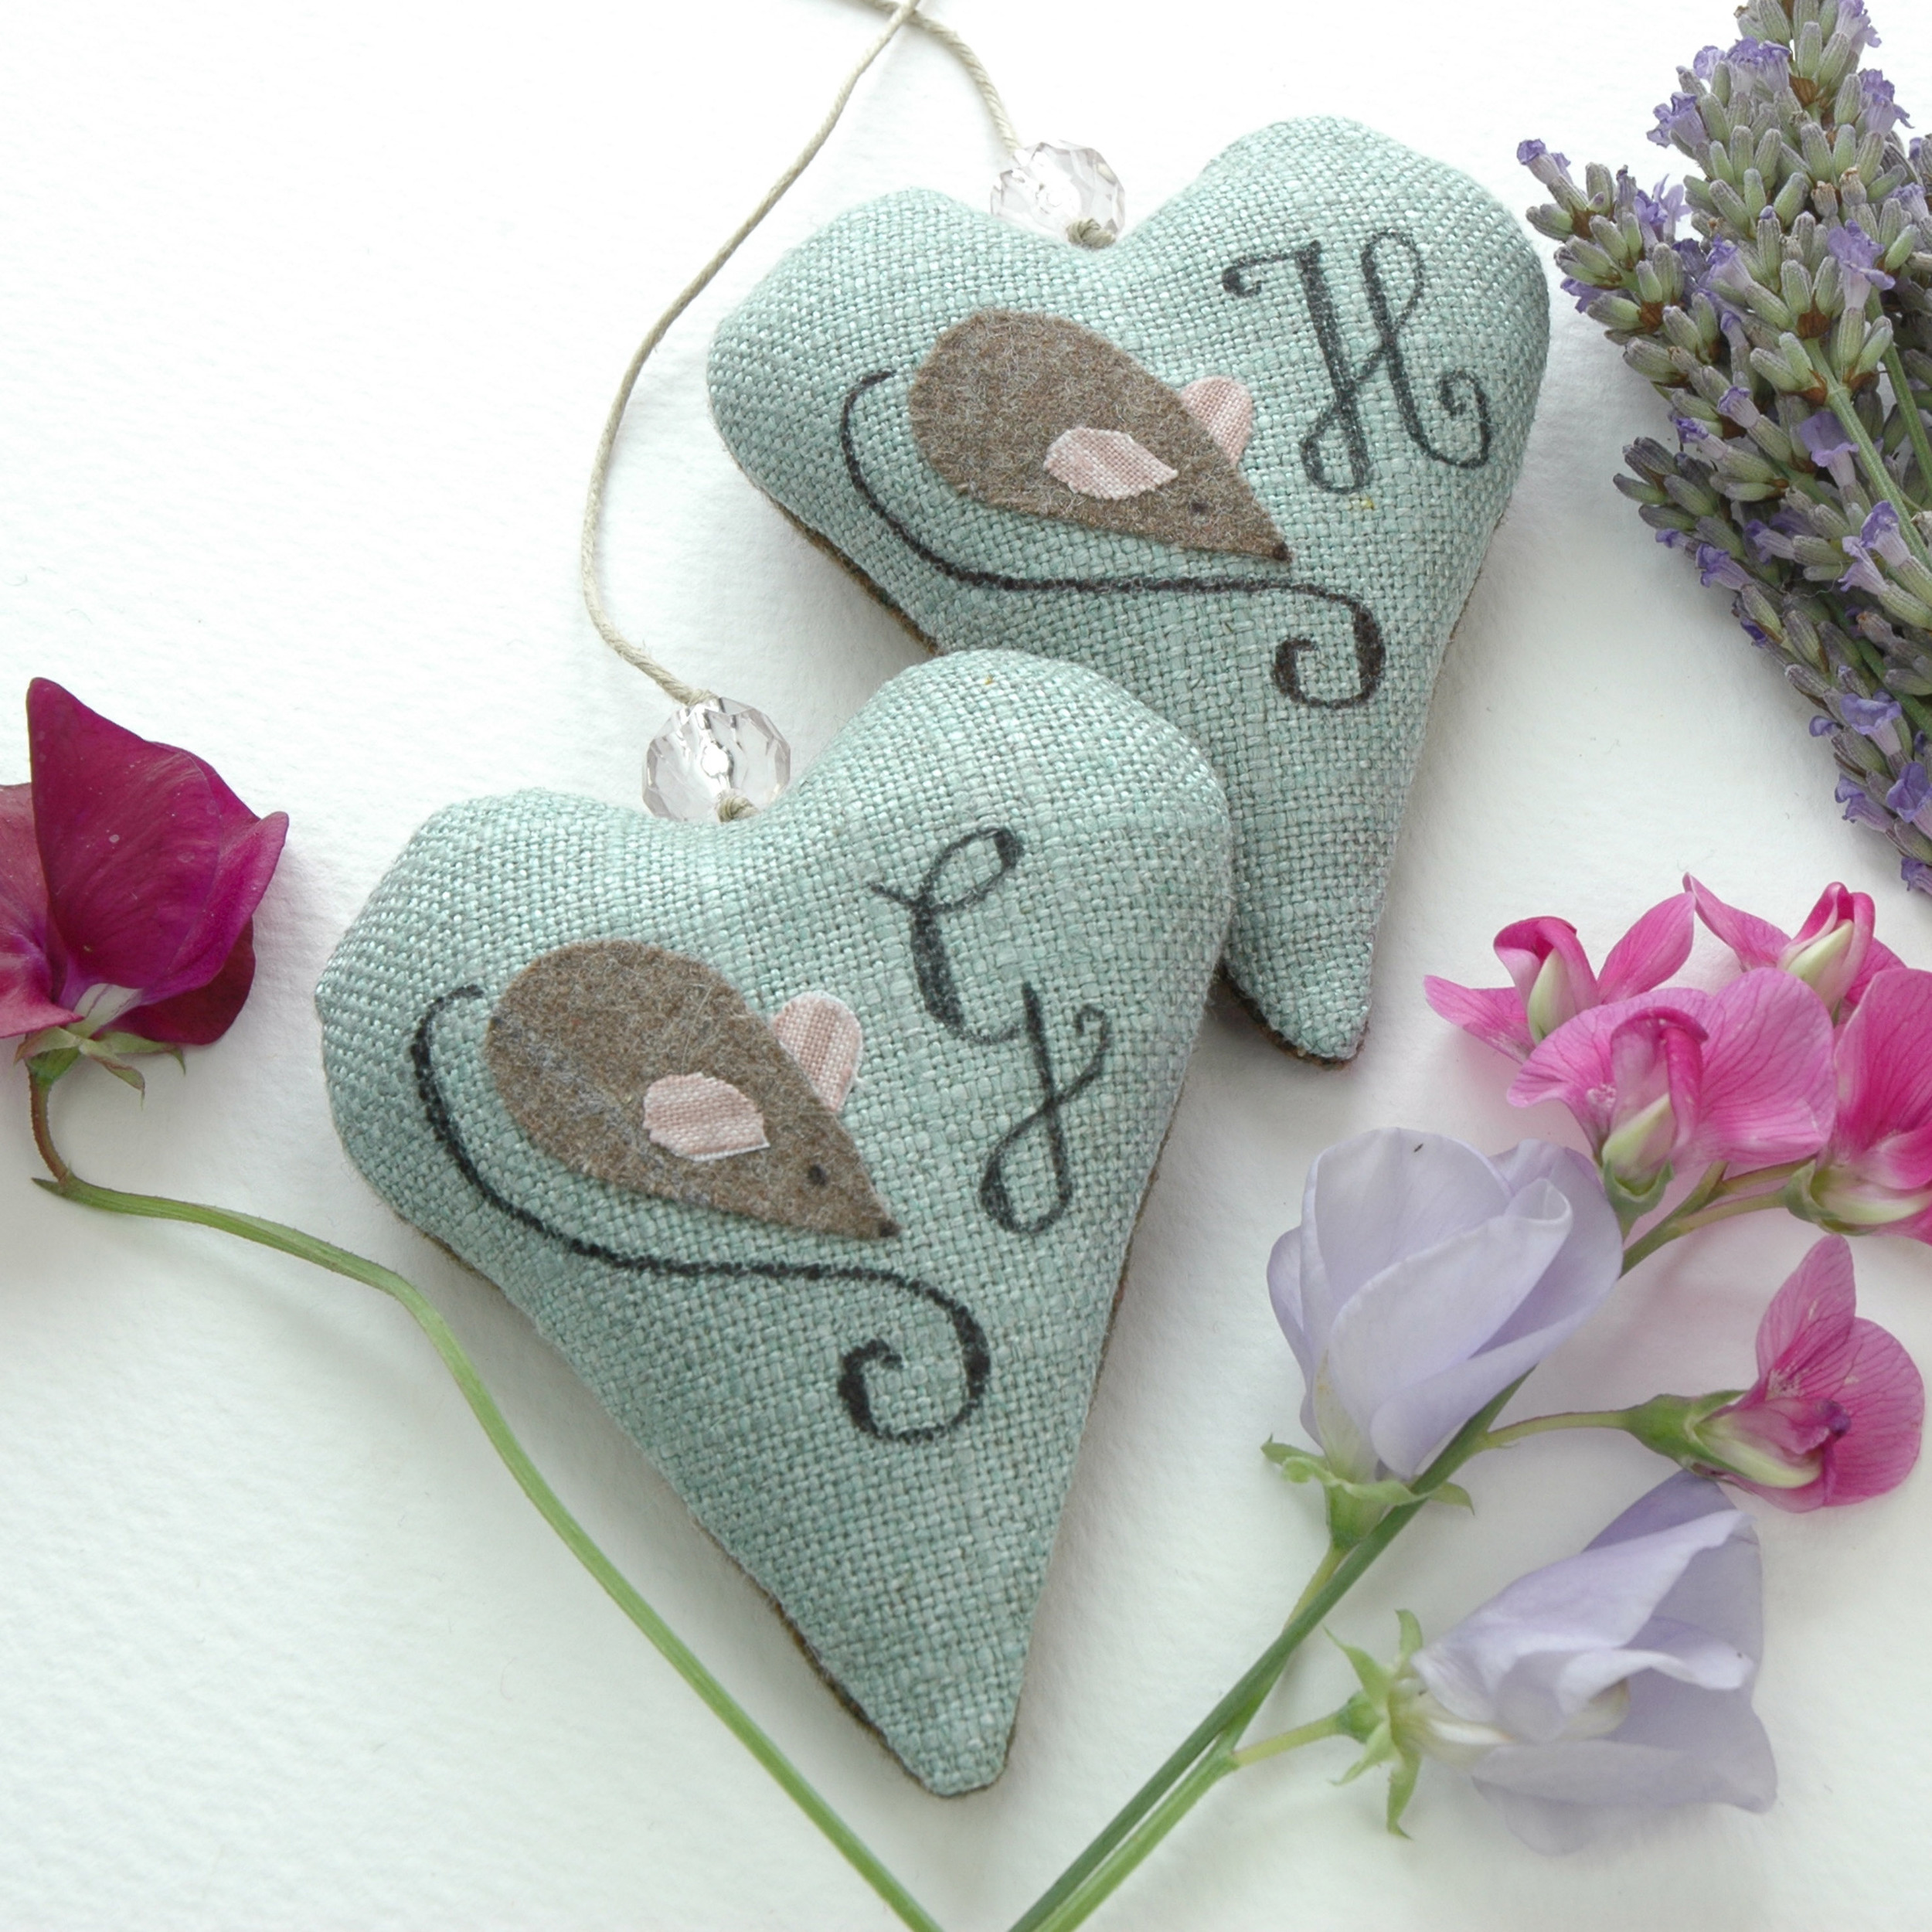 Handmade lavender filled hanging hearts.